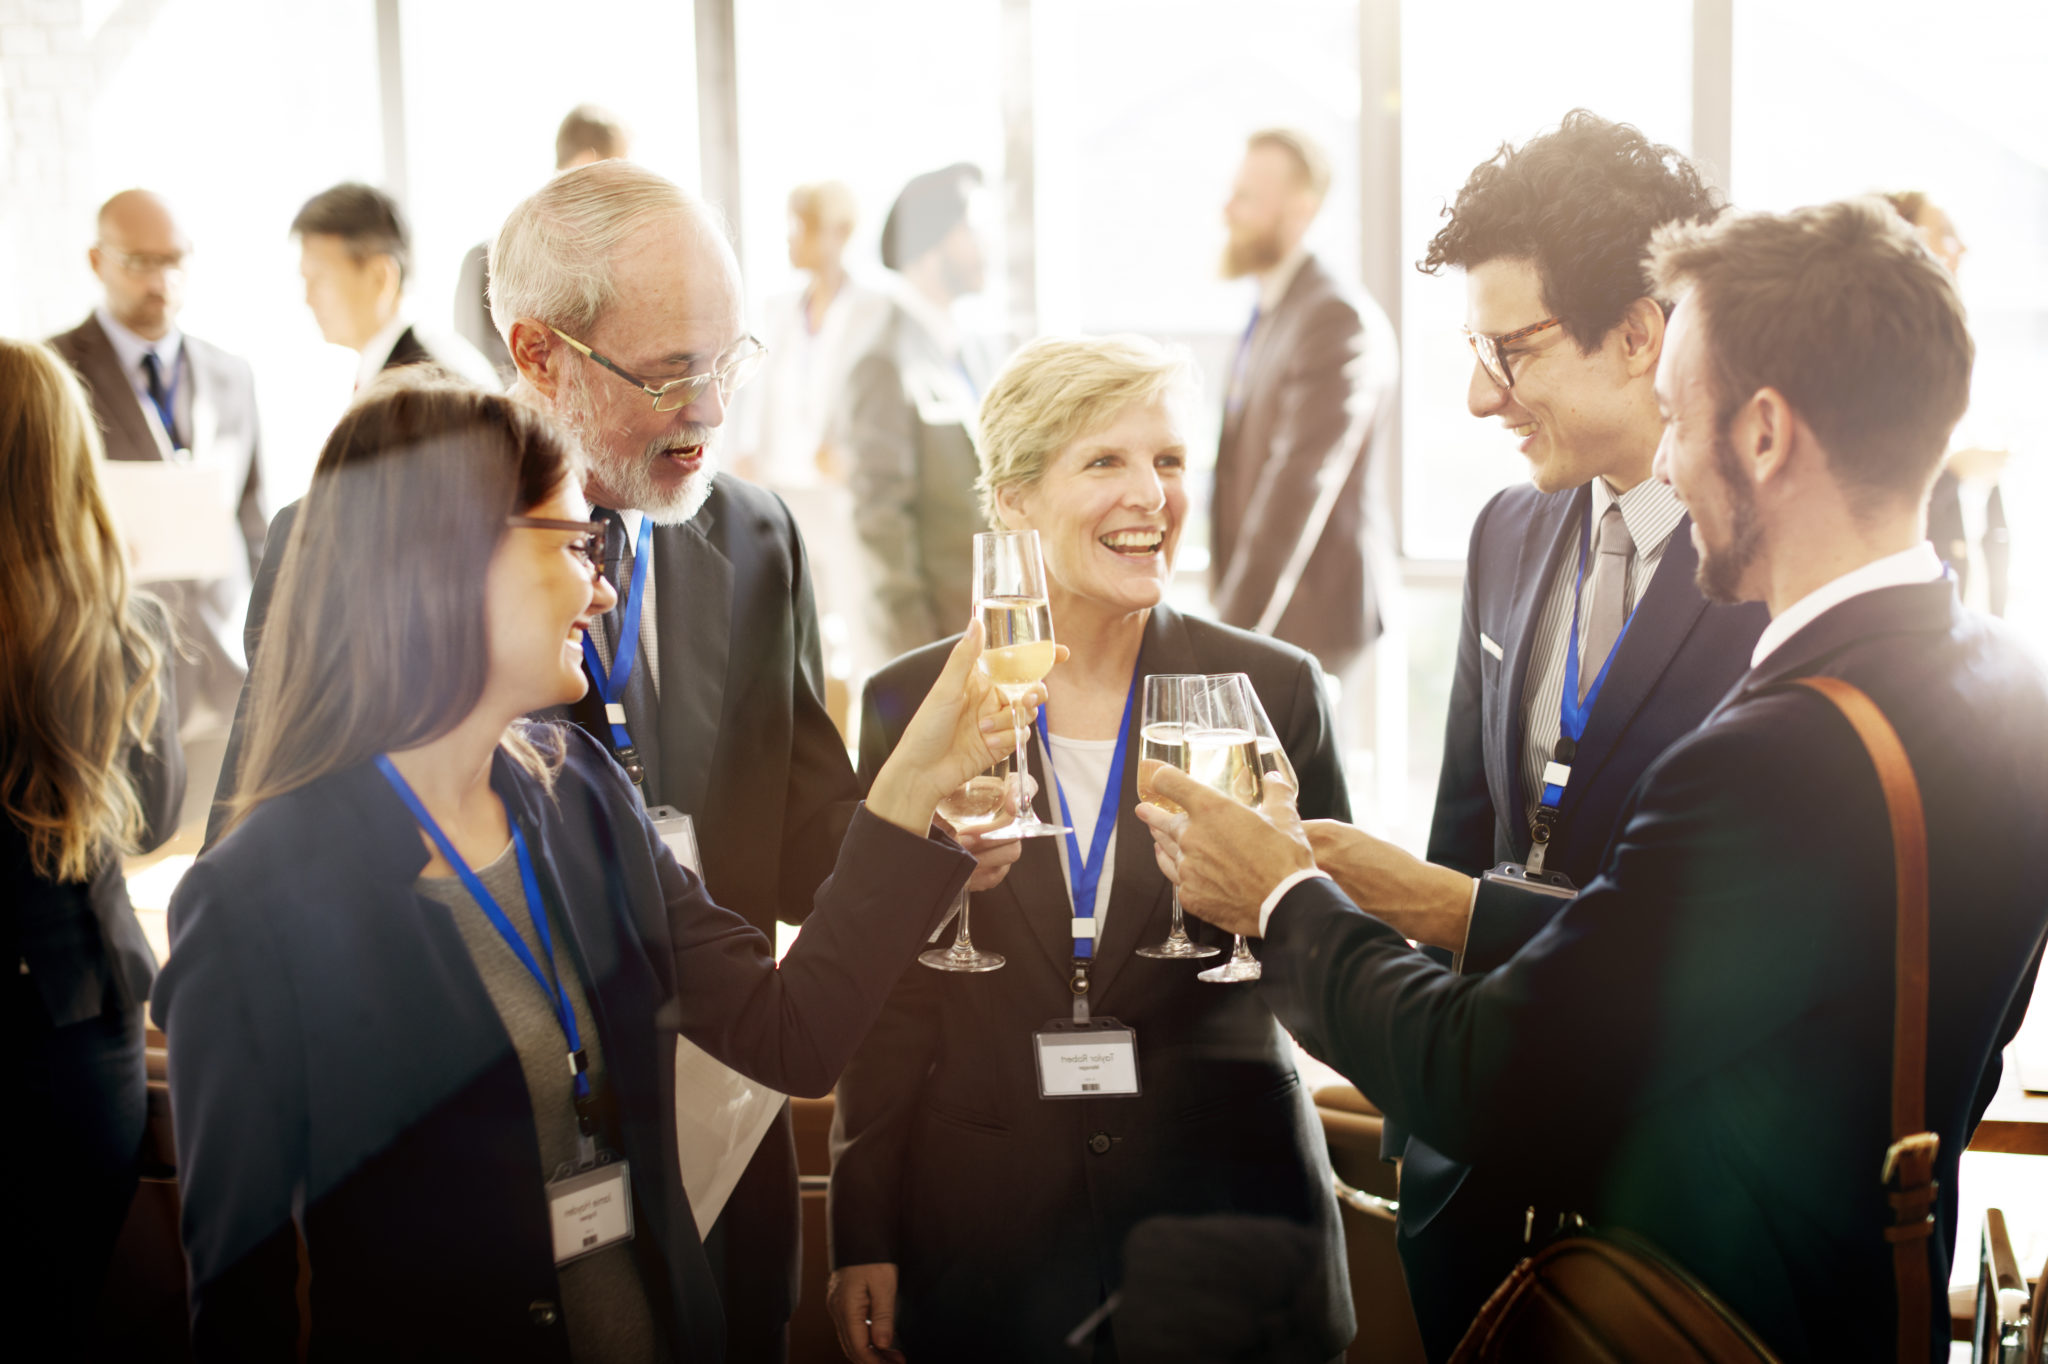 Networking for introverts: focus on your strengths